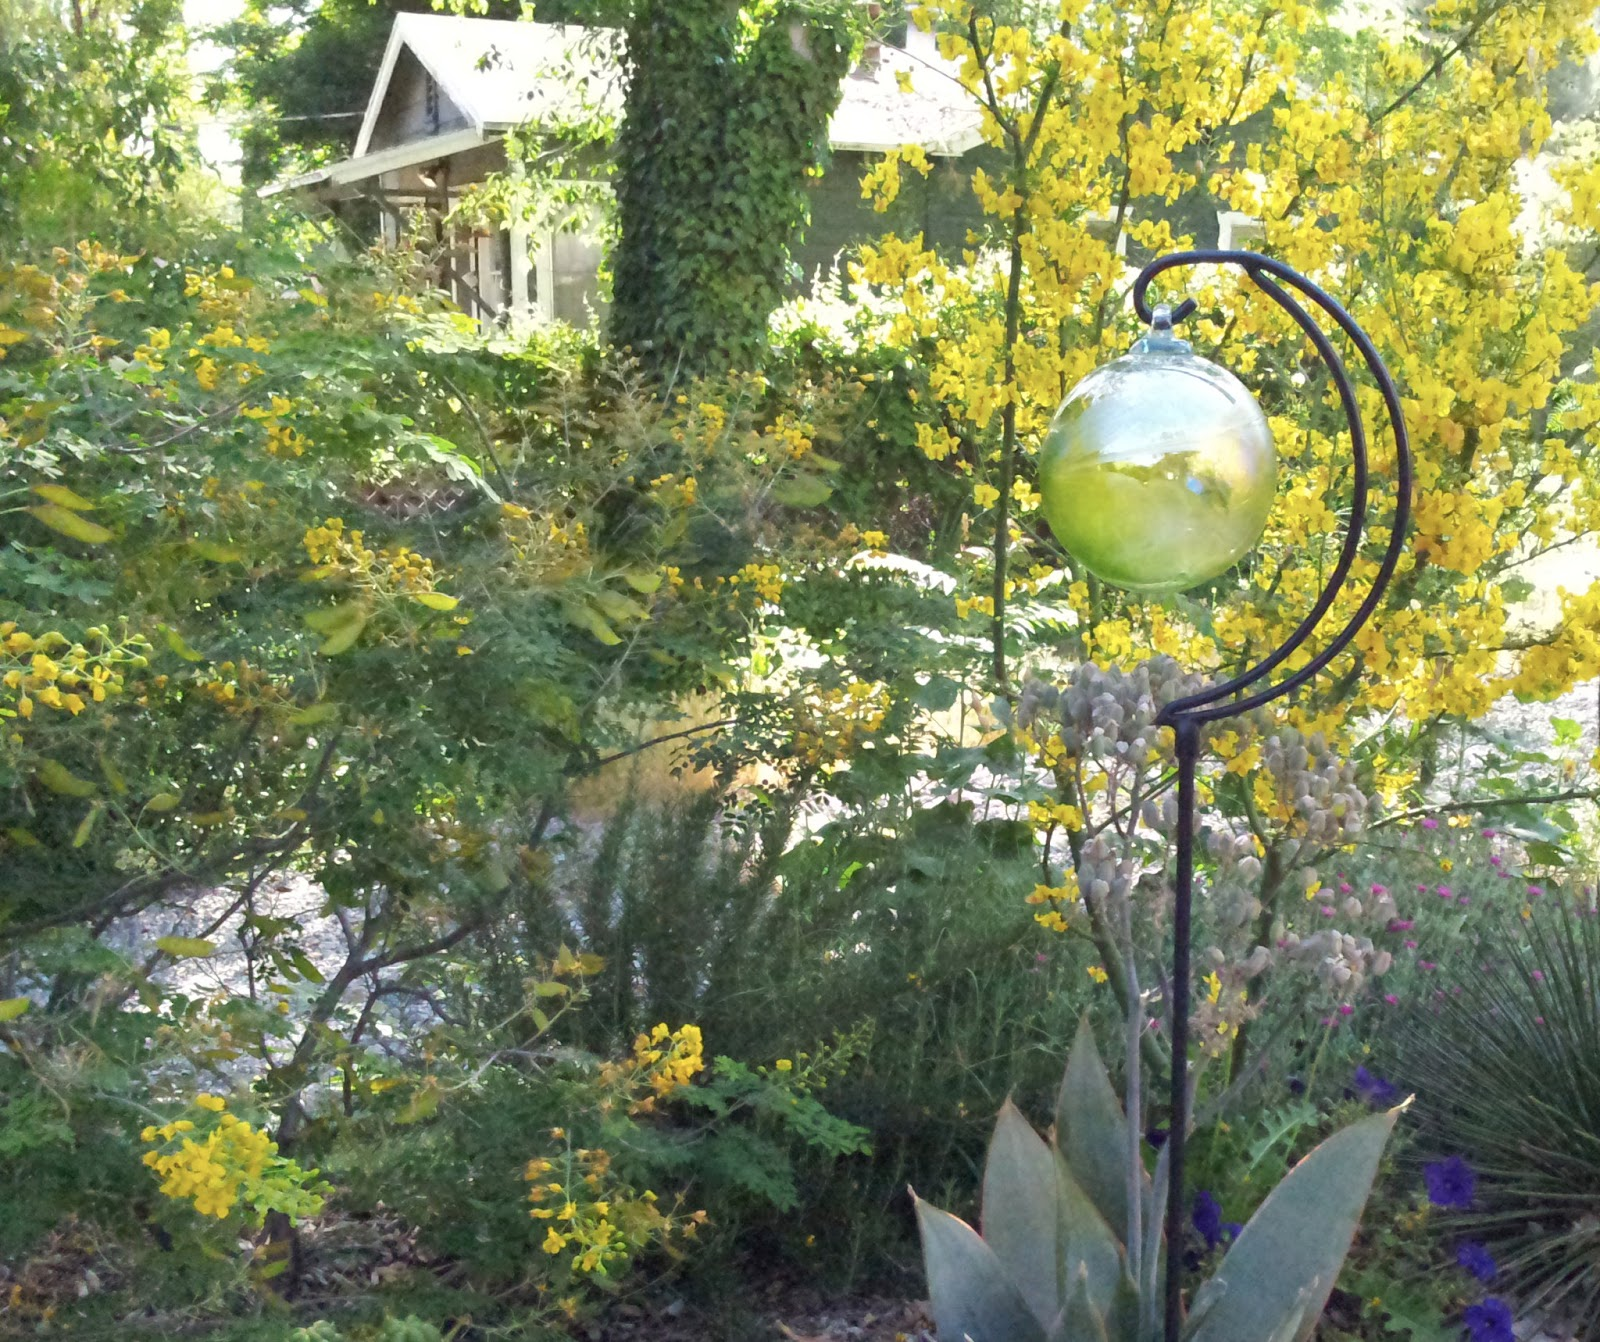 Adding Gazing Balls And Spheres To Your Garden